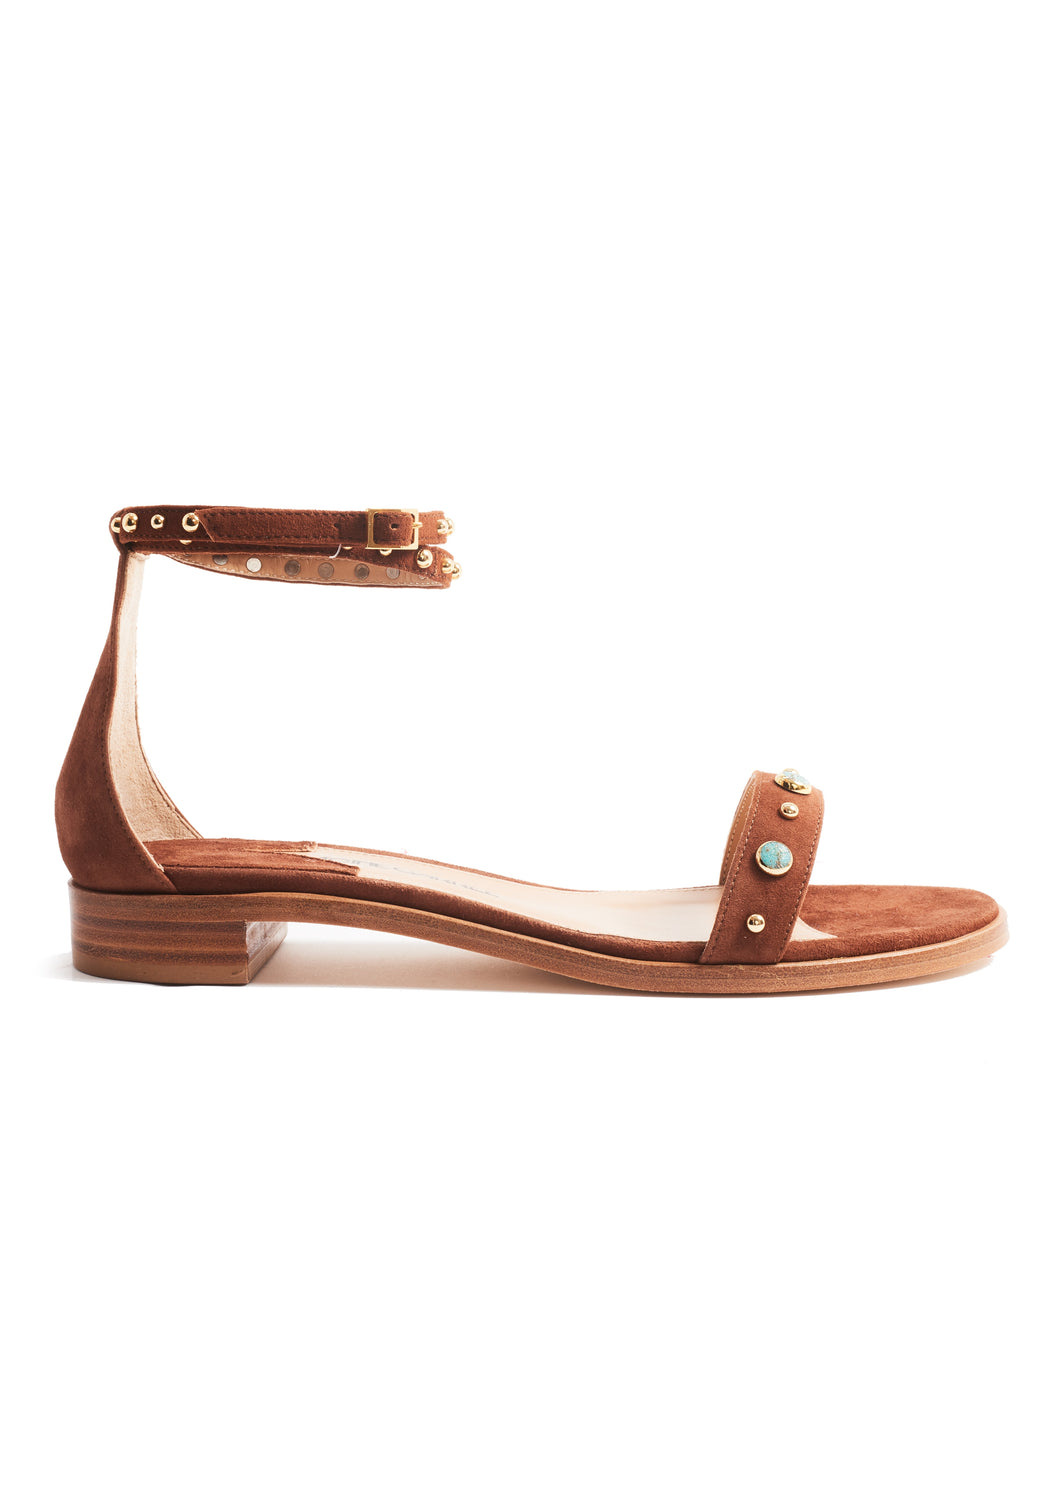 DEER SUEDE AMINA SANDAL WITH STONES